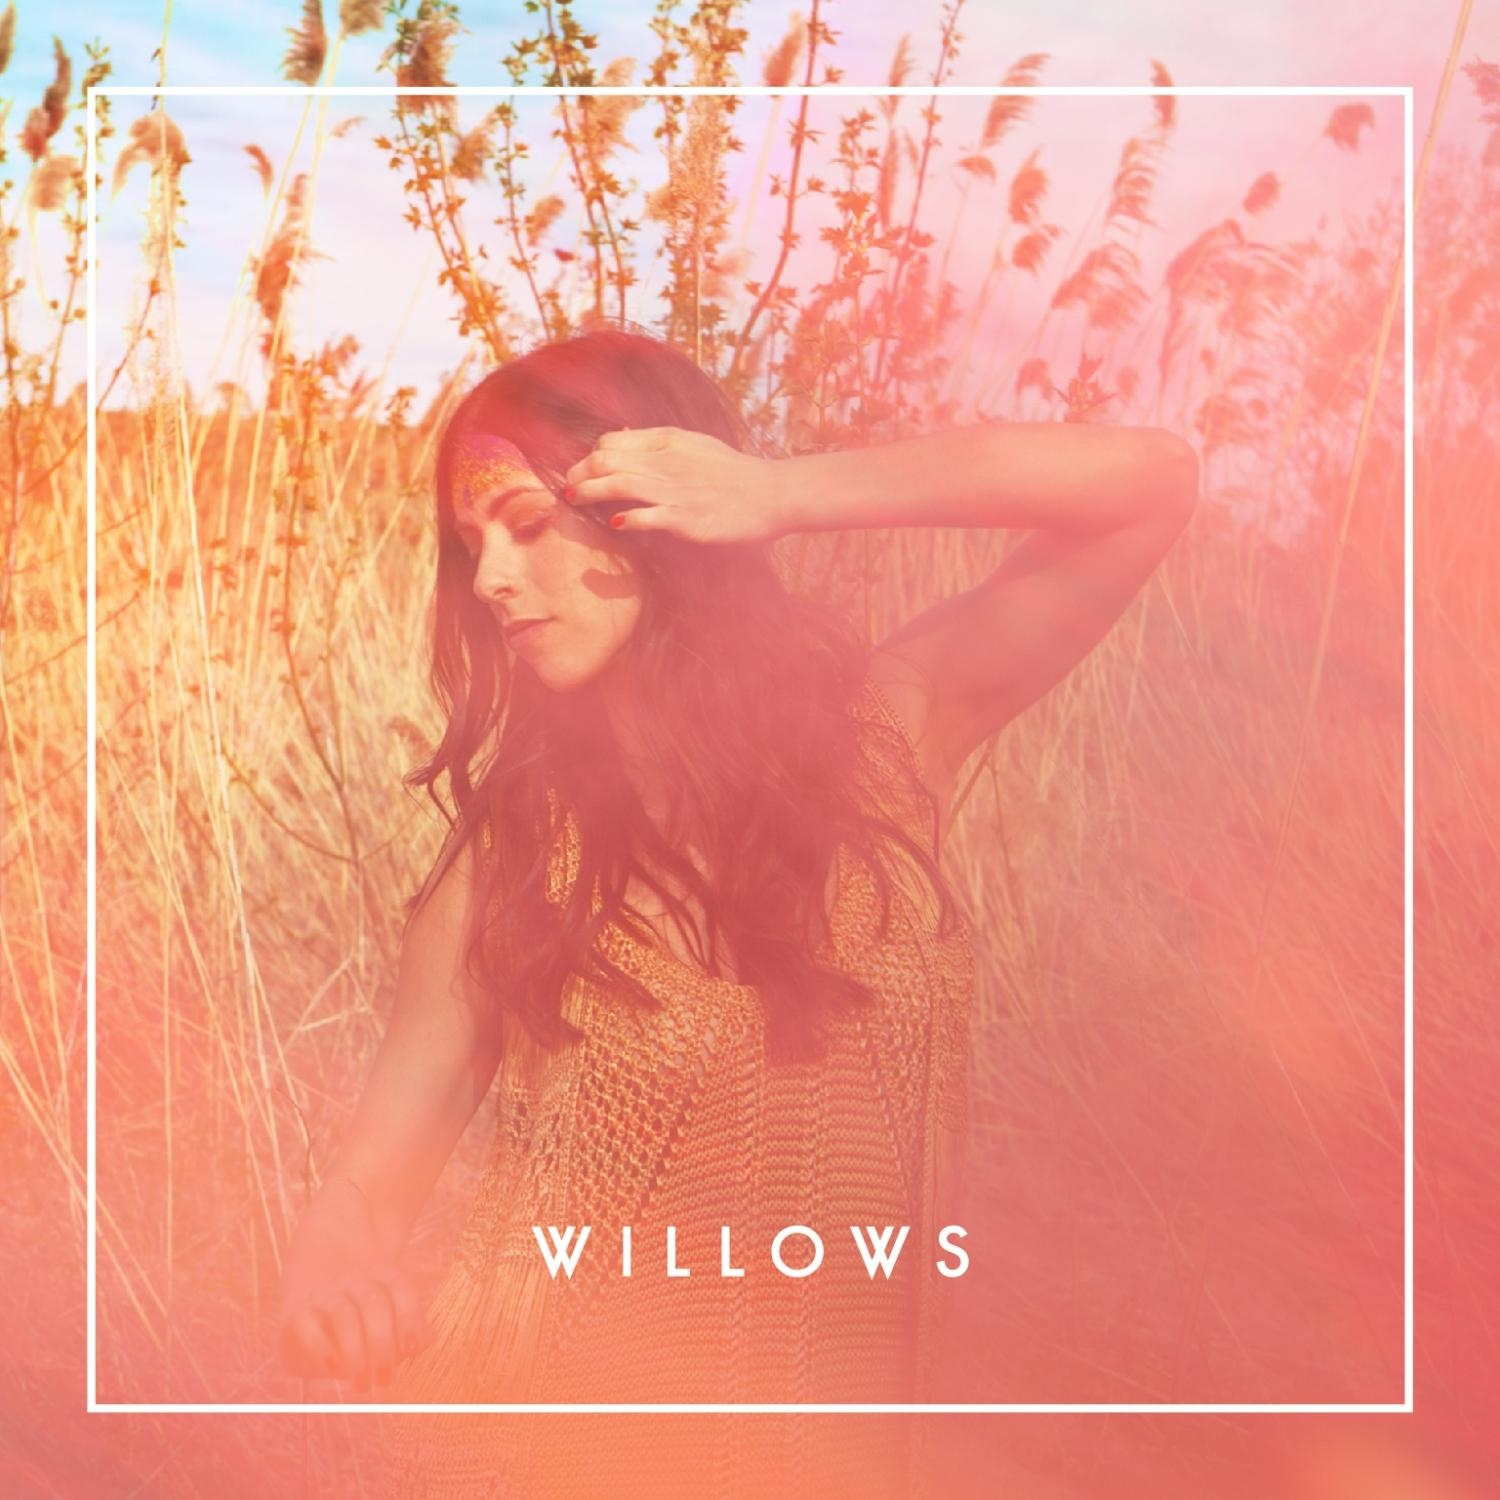 Willows (Geneviève Toupin)